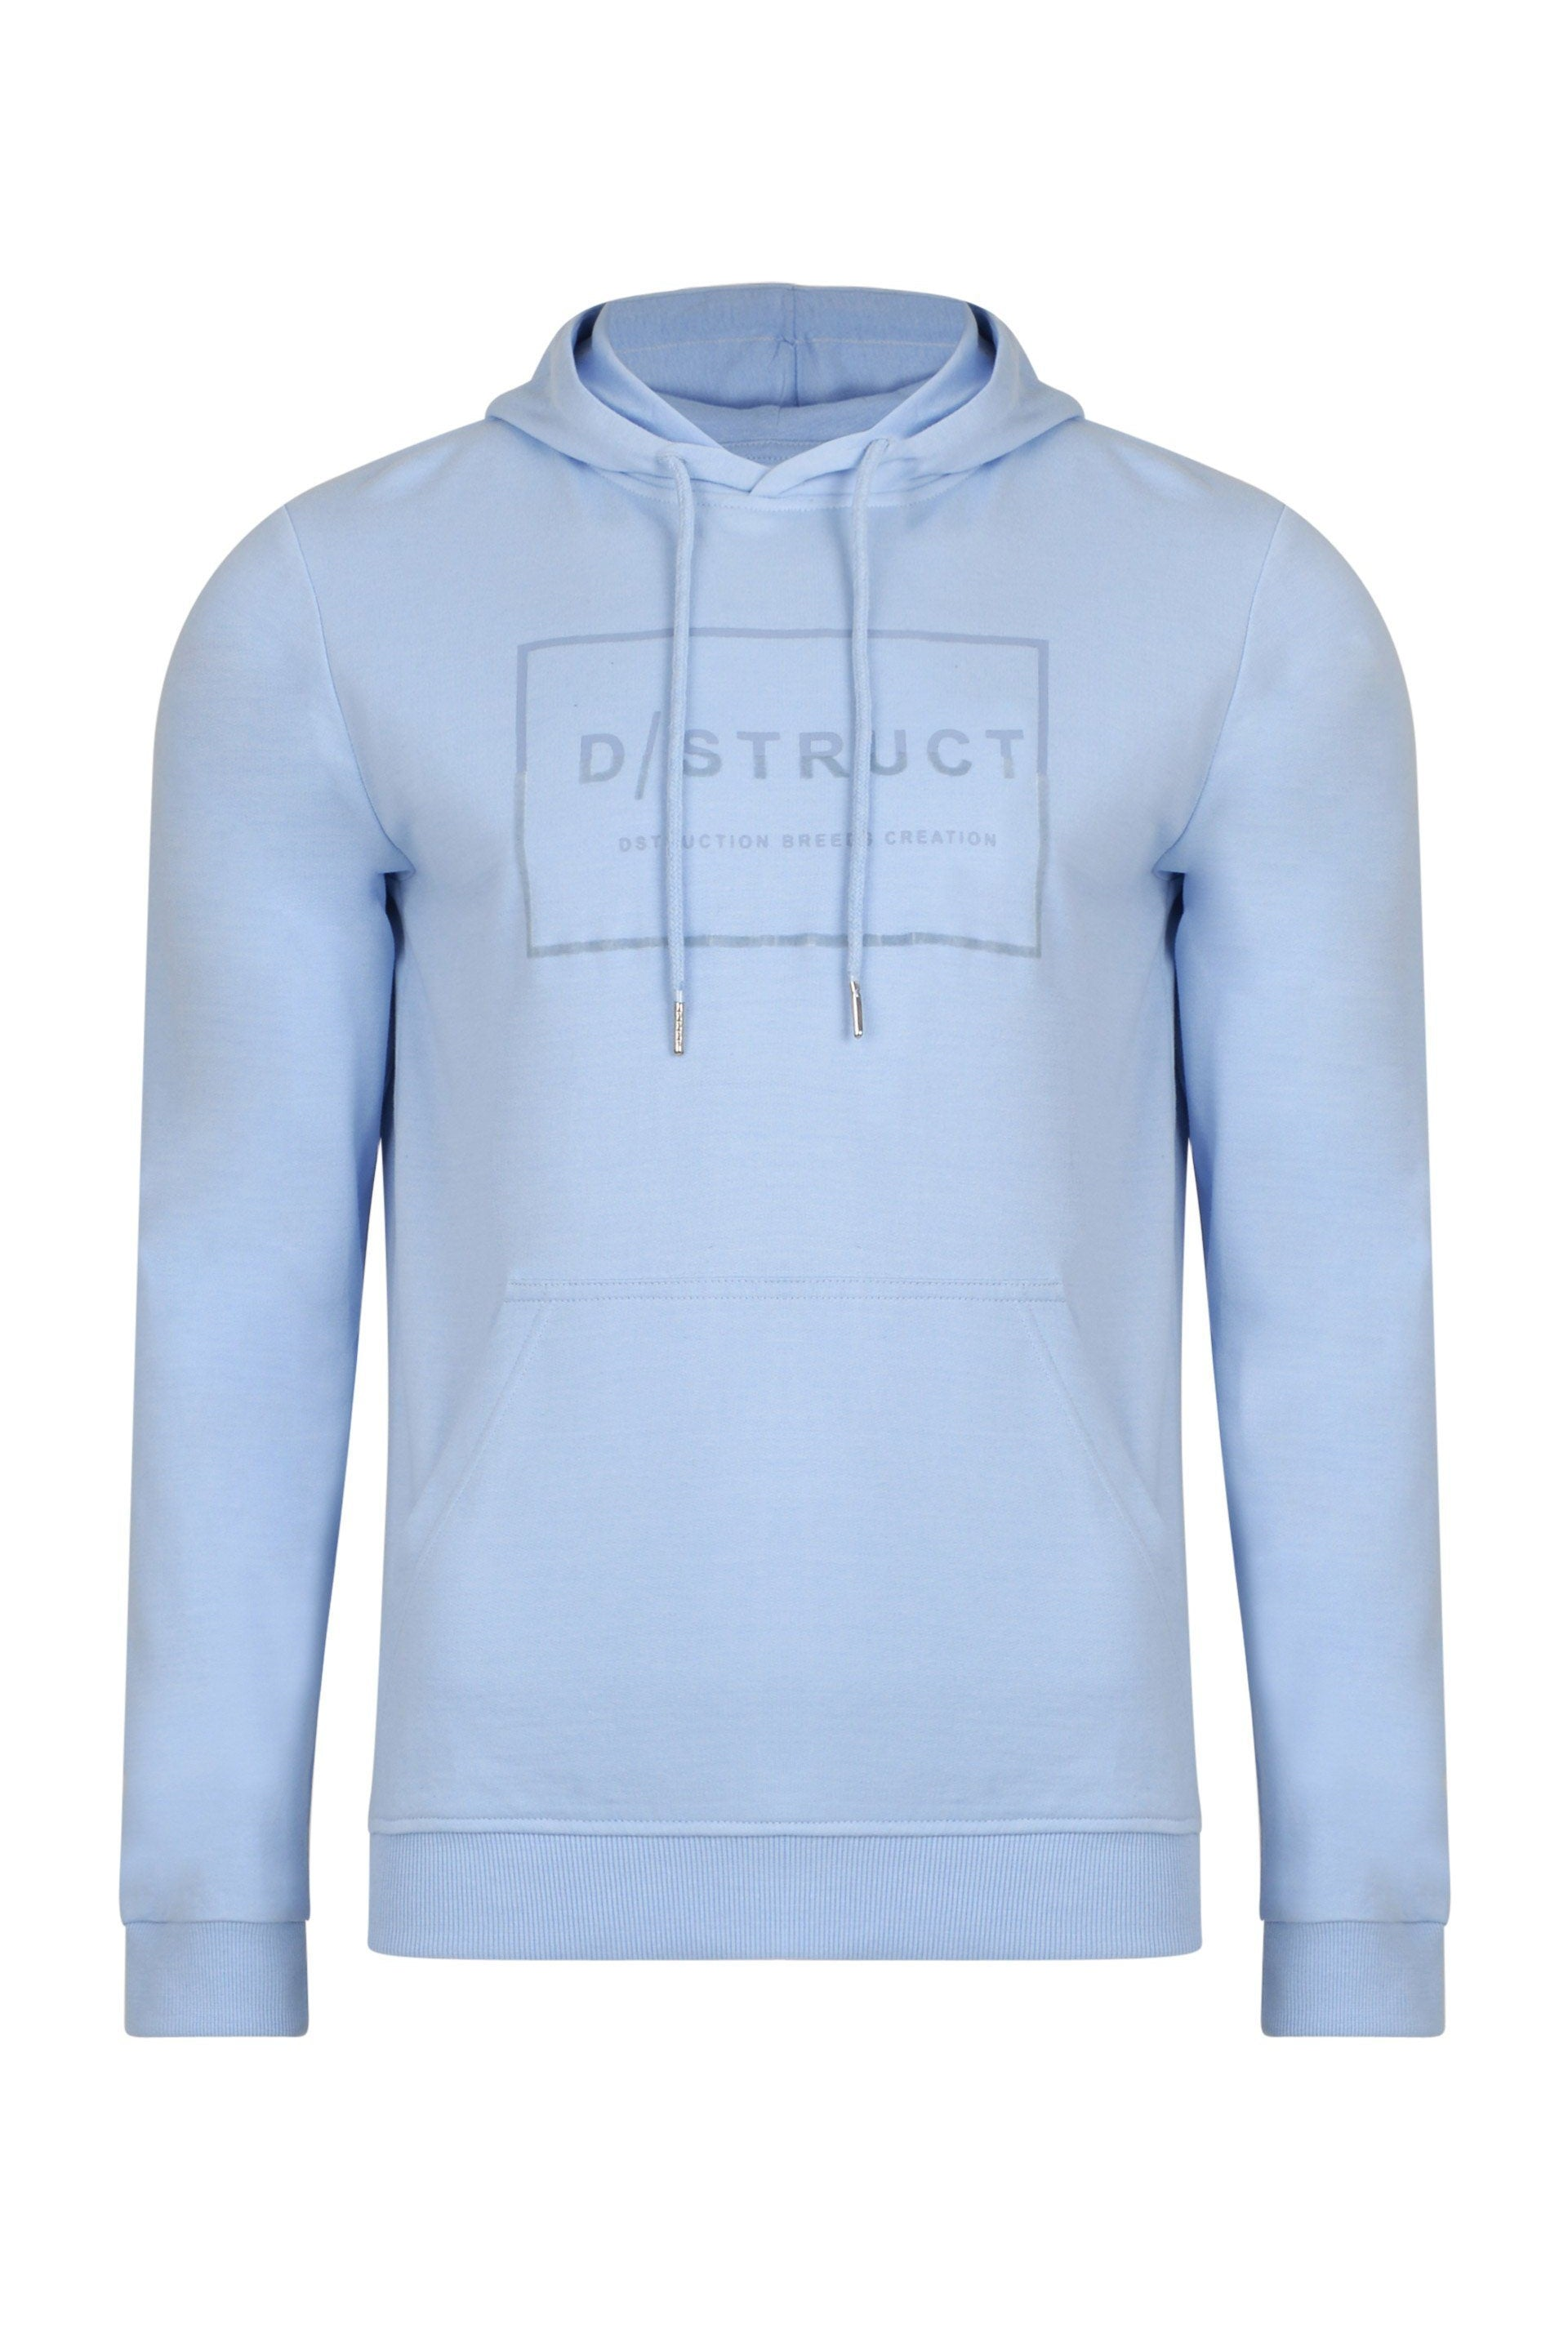 T-Shirts - DS Hoodie Blue